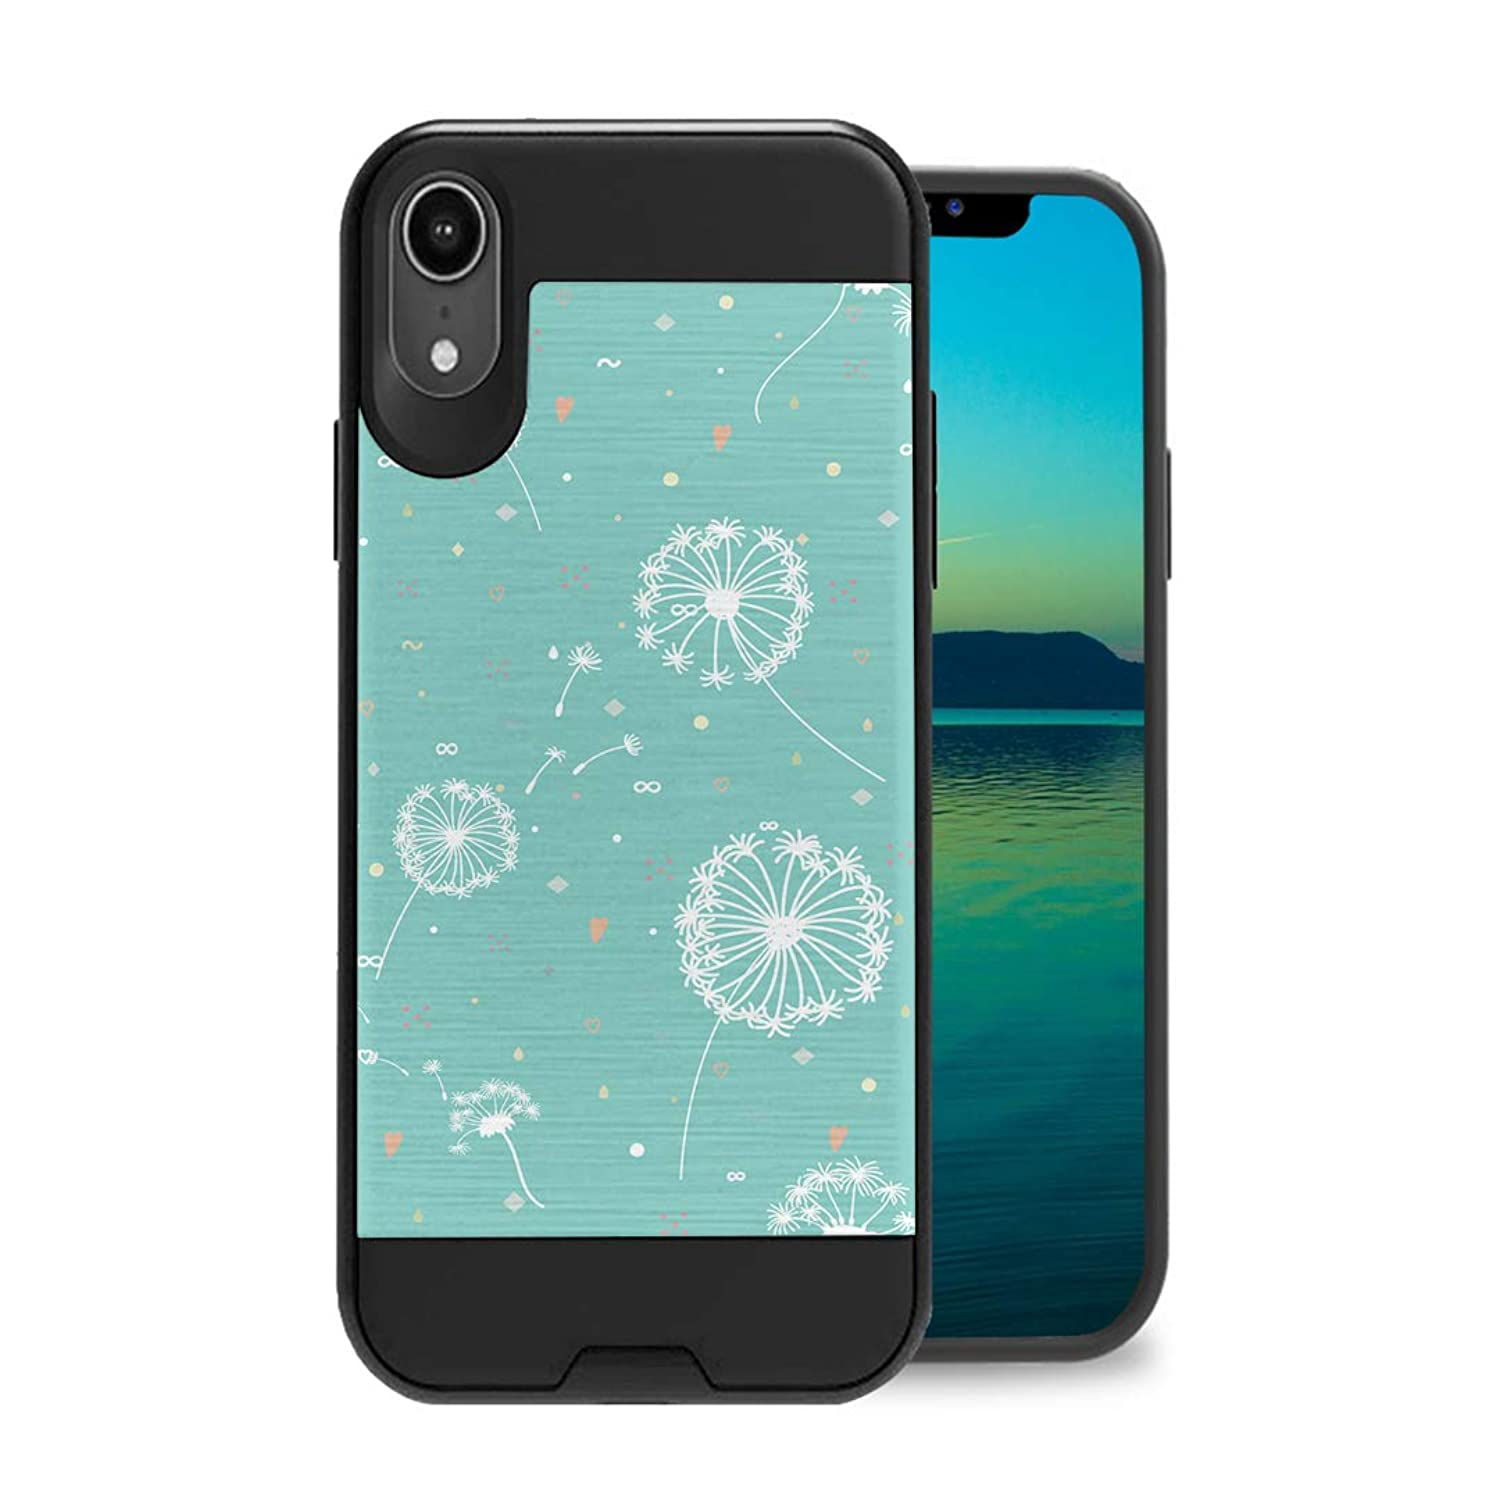 Zicomaxcap Case Compatible with iPhone Xs Max [Hybrid Fusion Supports Qi Wireless Charging Dual Layer Slick Armor Case Black] for iPhone Xs Max - (Dandelion)